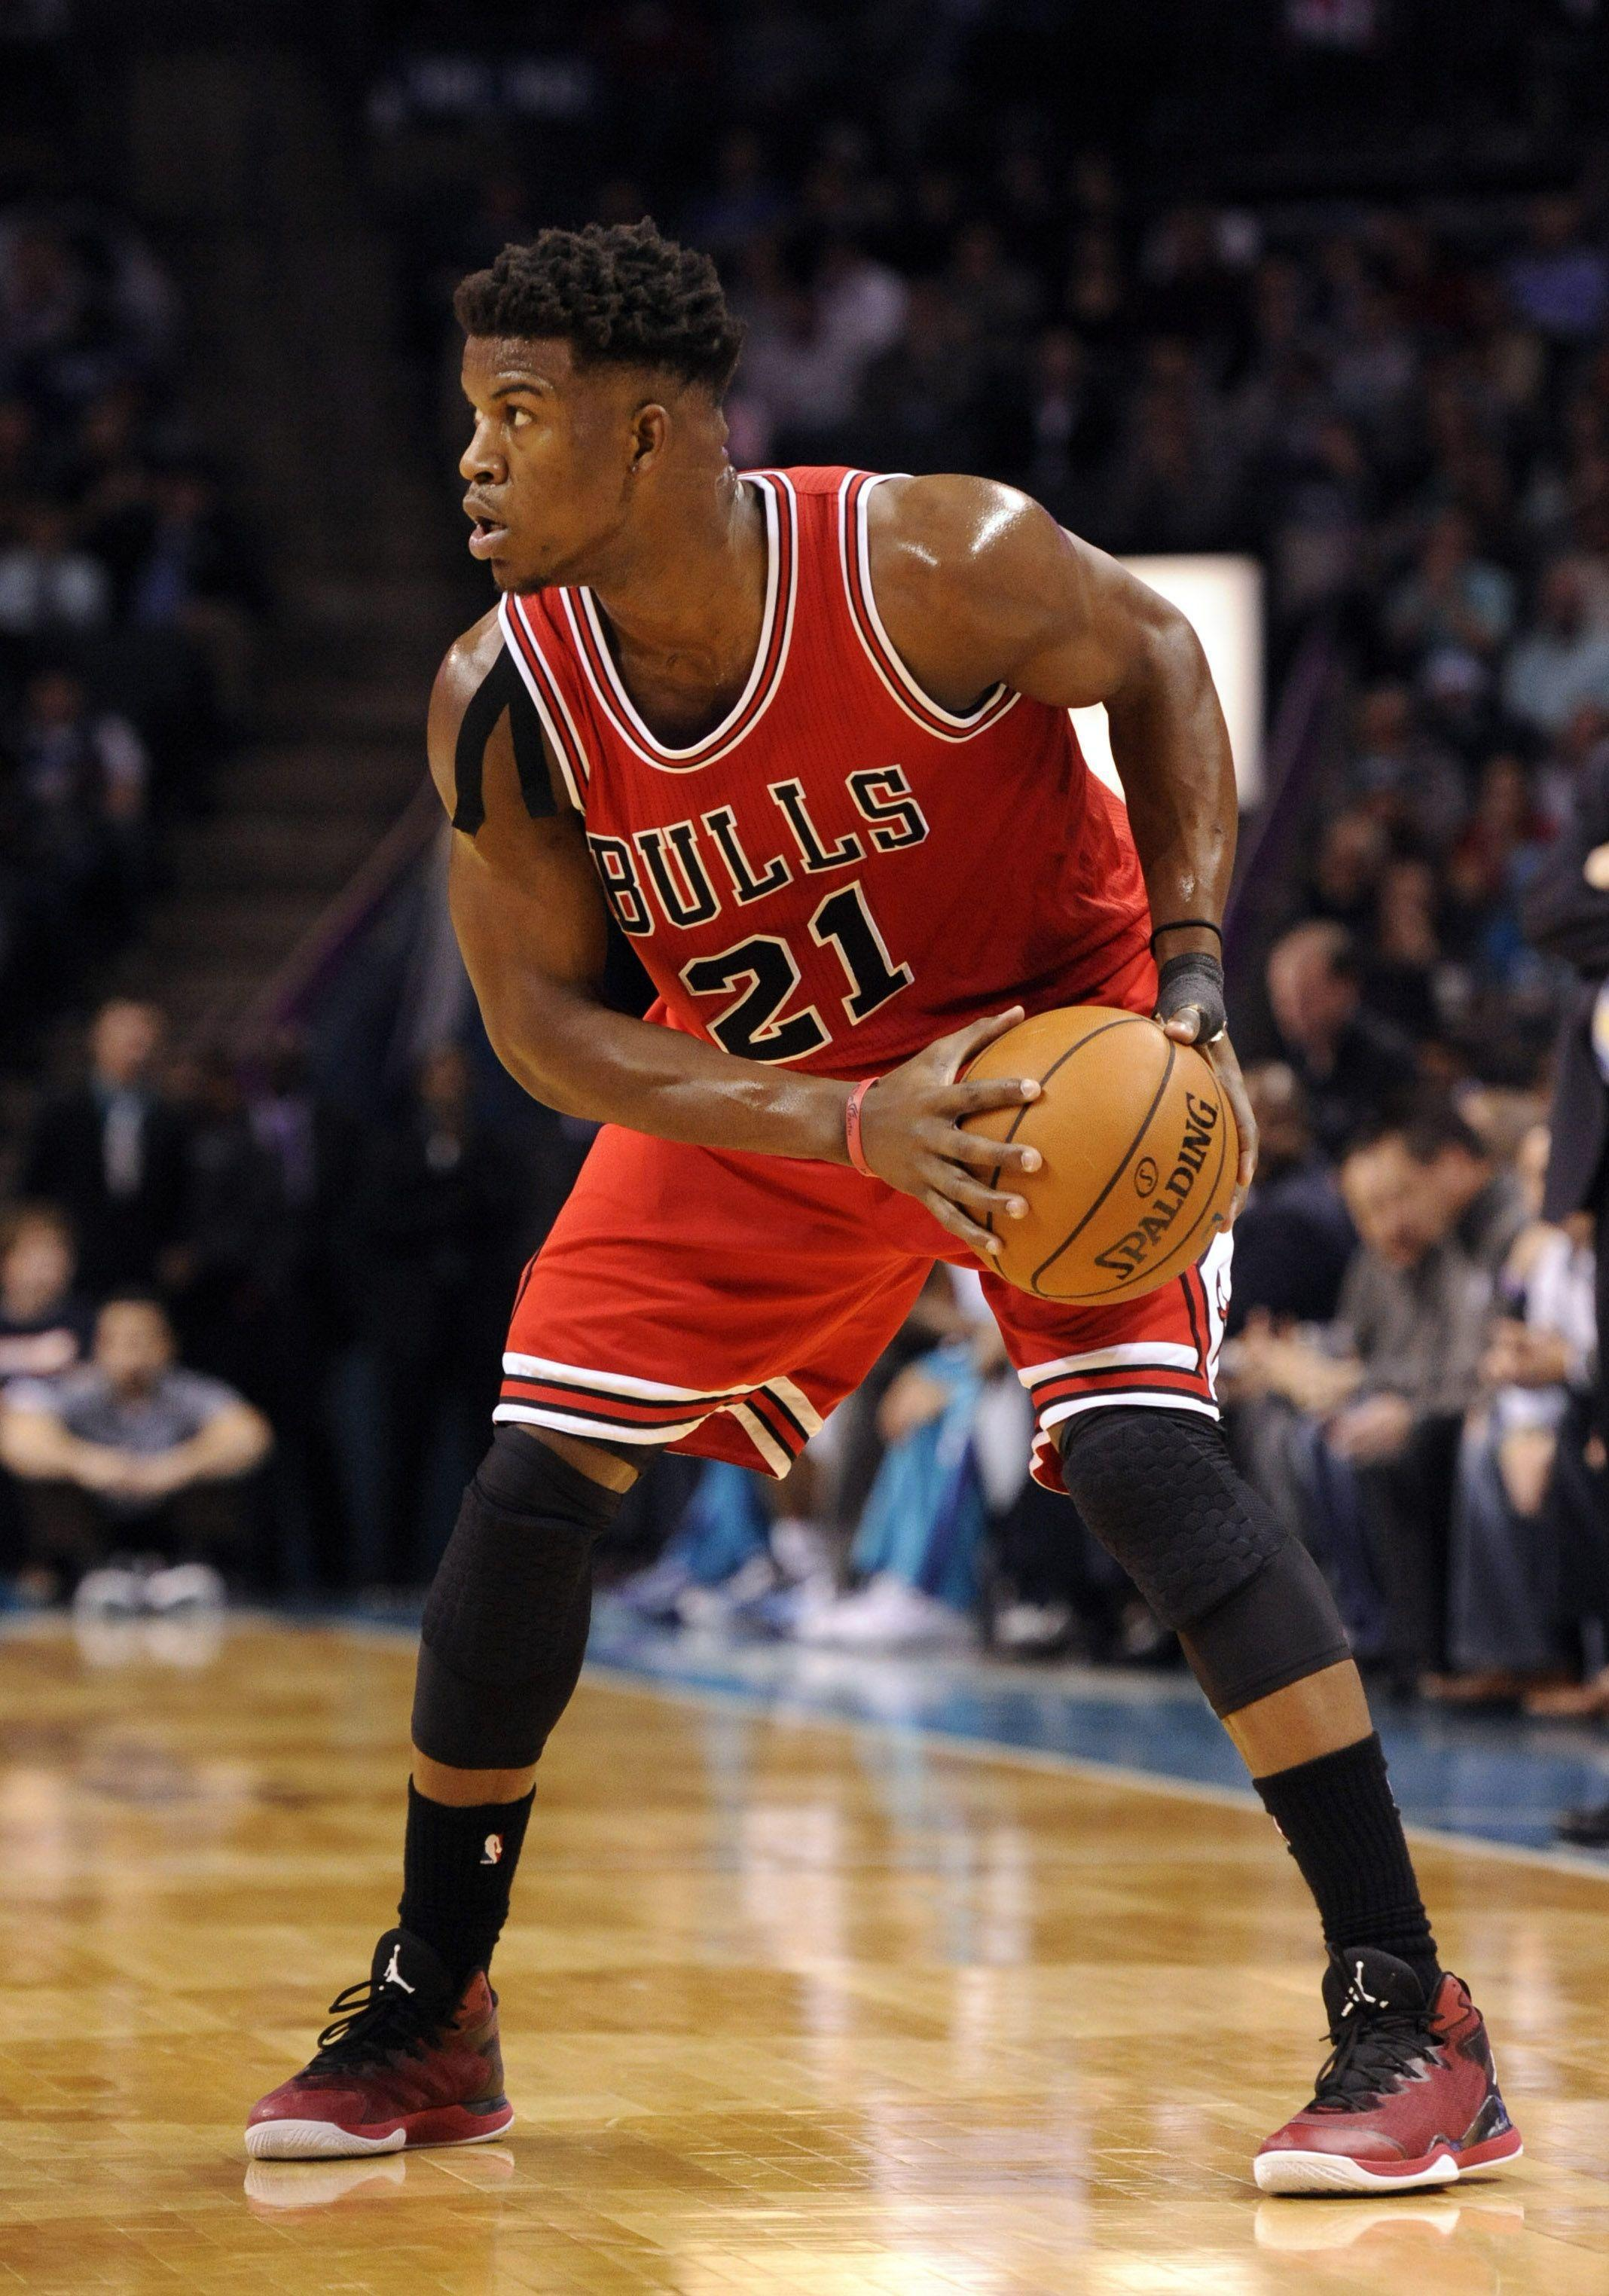 Jimmy Butler Wallpapers High Resolution and Quality Download |Jimmy Butler Dunk Wallpaper